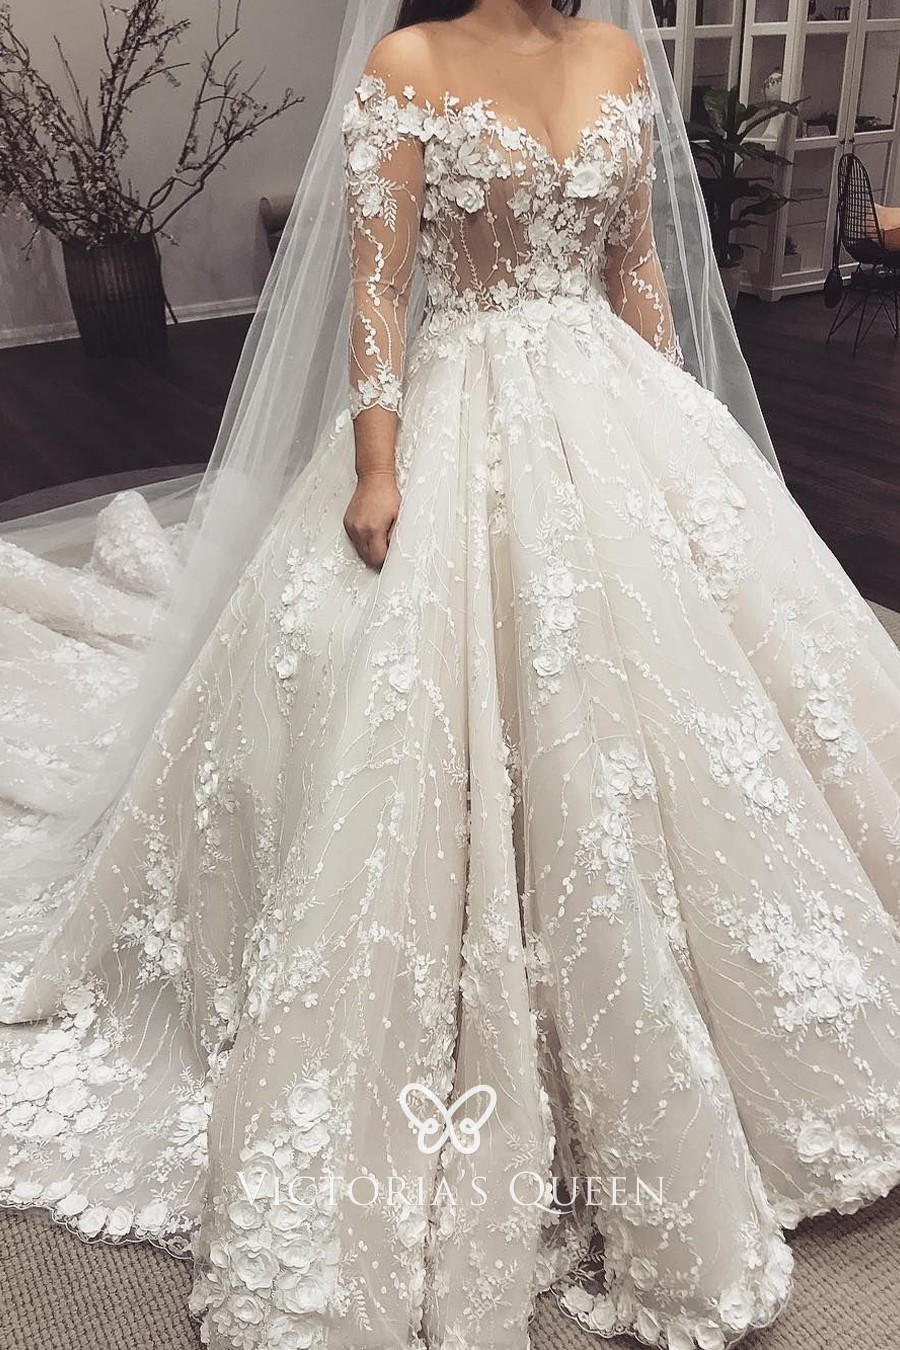 Sheer Ivory silk chiffon and appliqued floral lace